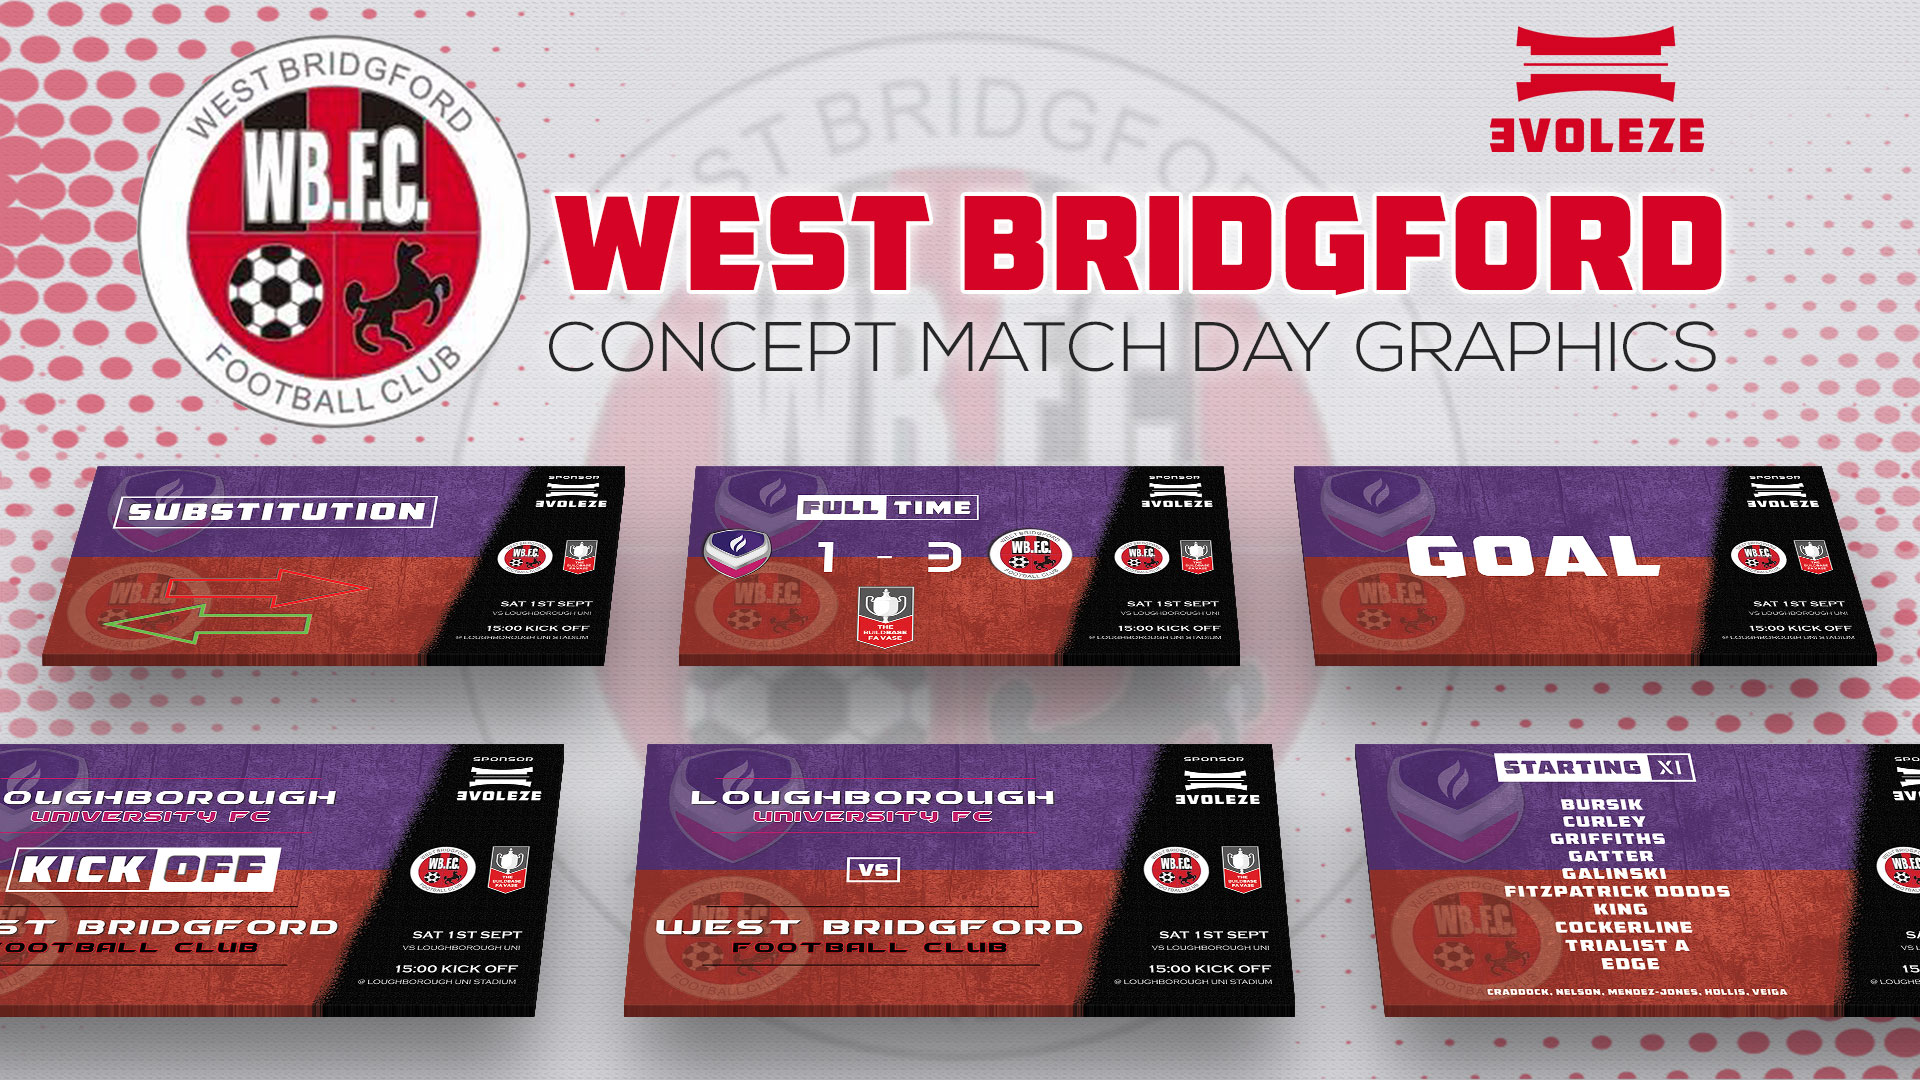 west bridgford match day graphics set